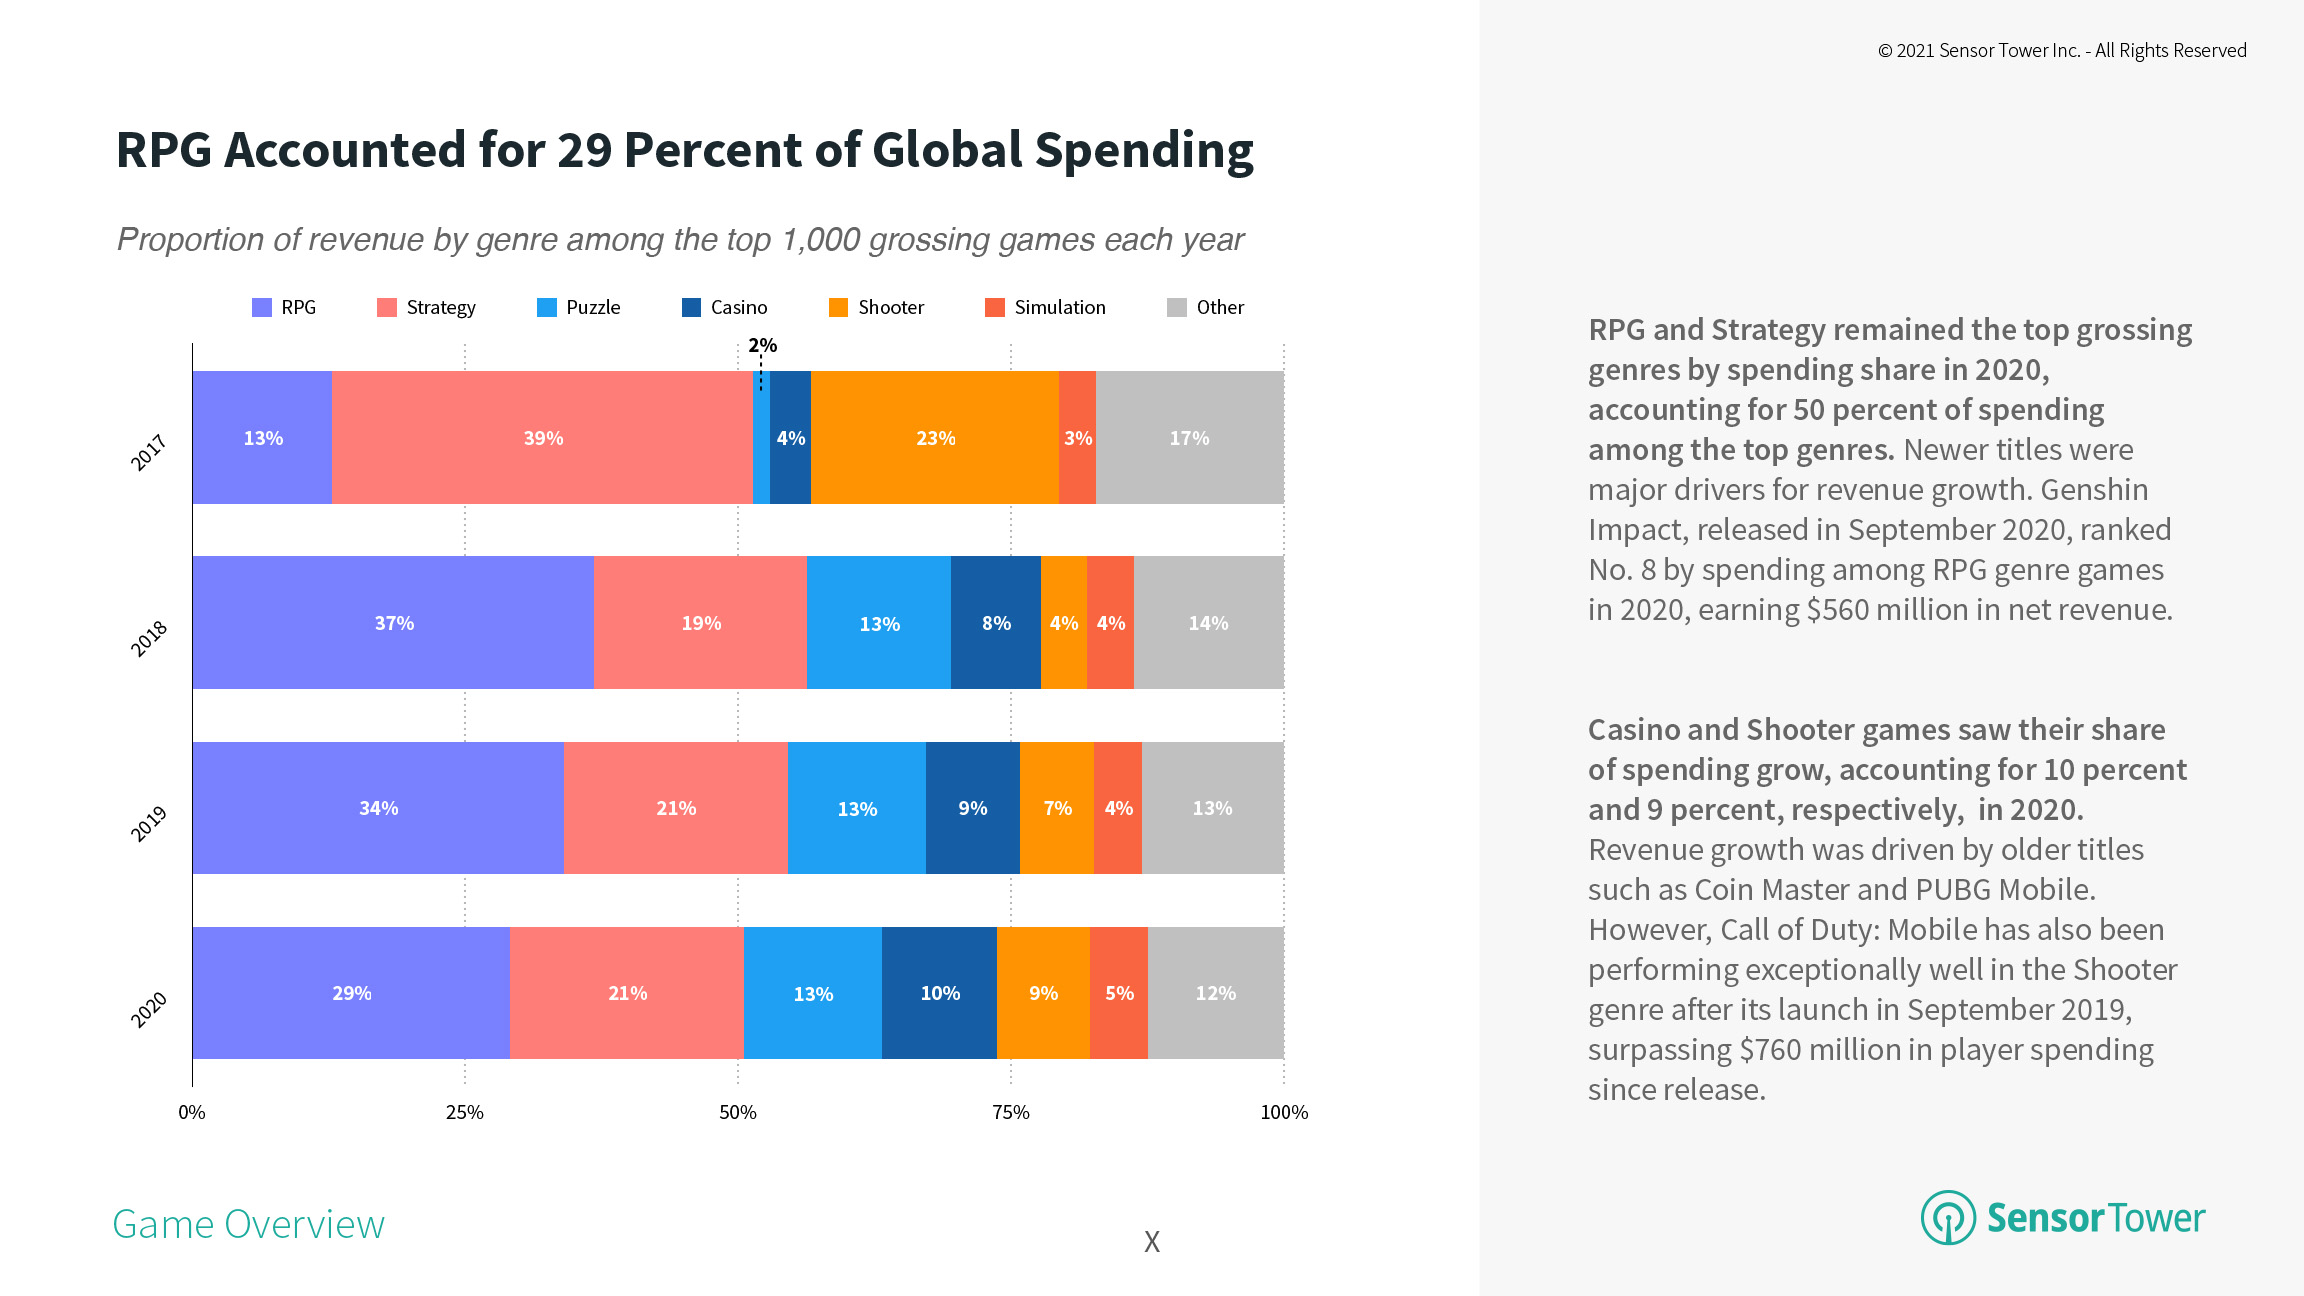 RPGs Accounted for 29 Percent of Global Spending